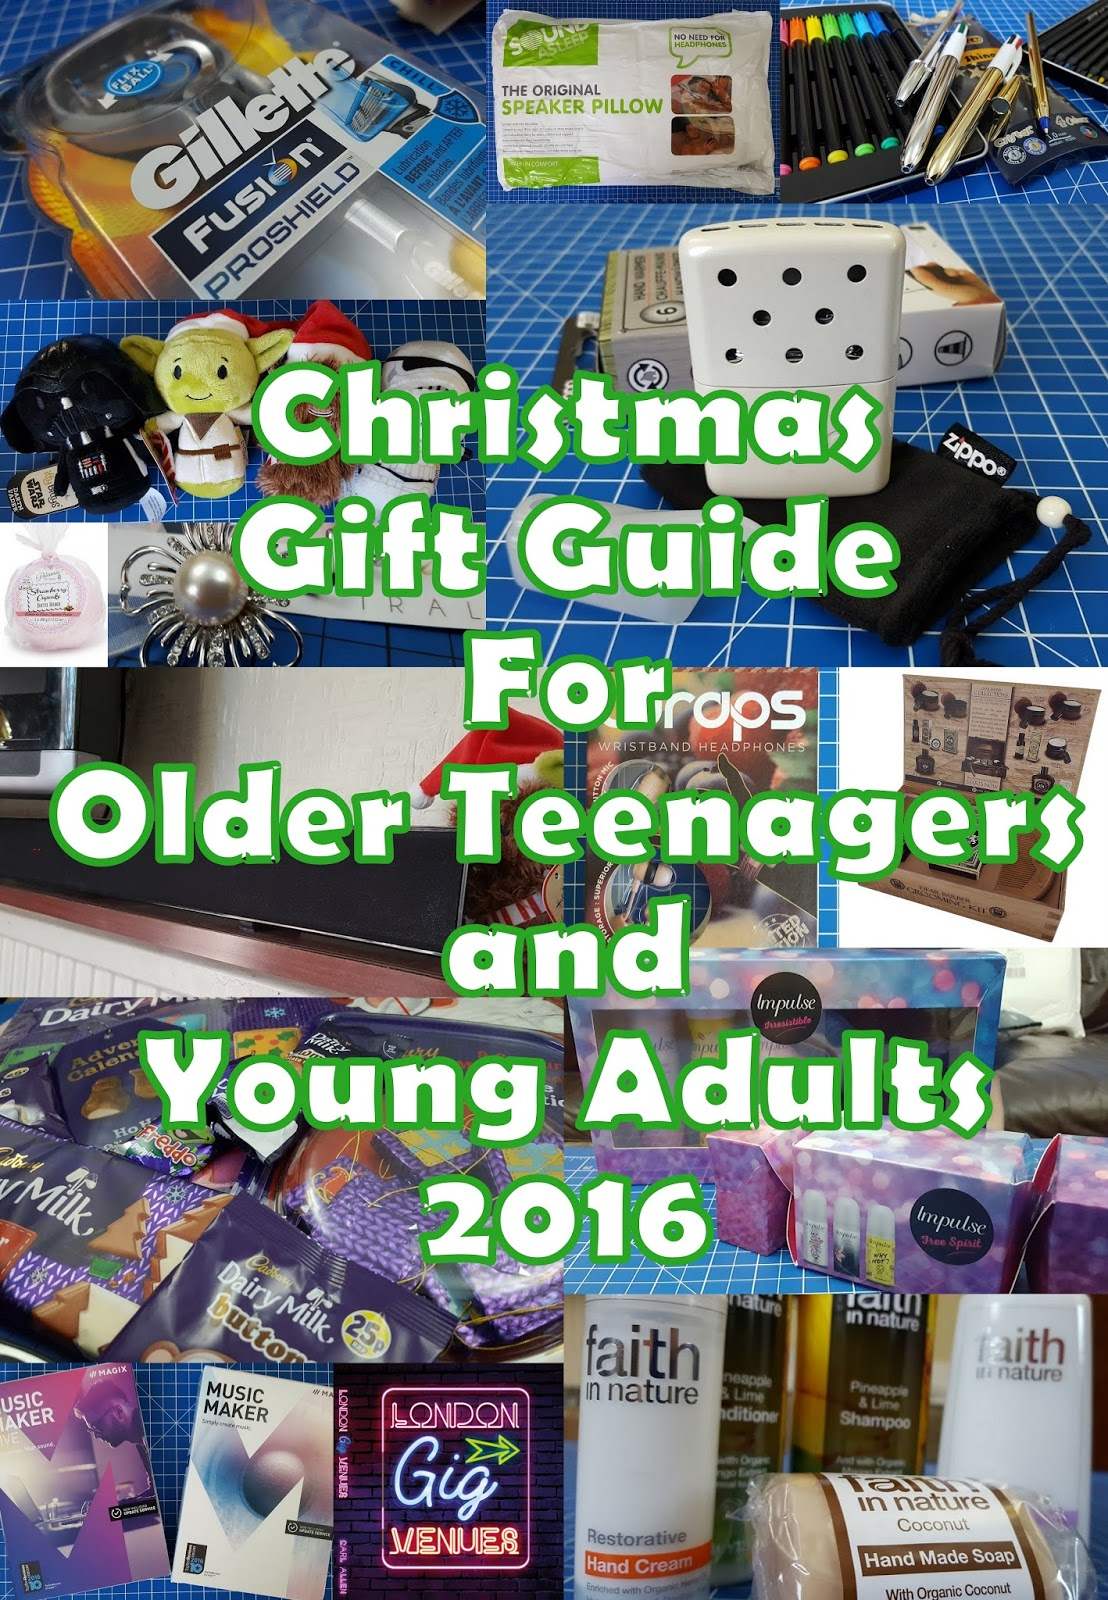 The Brick Castle: Older Teenagers and Young Adult\'s Gift Guide 2016